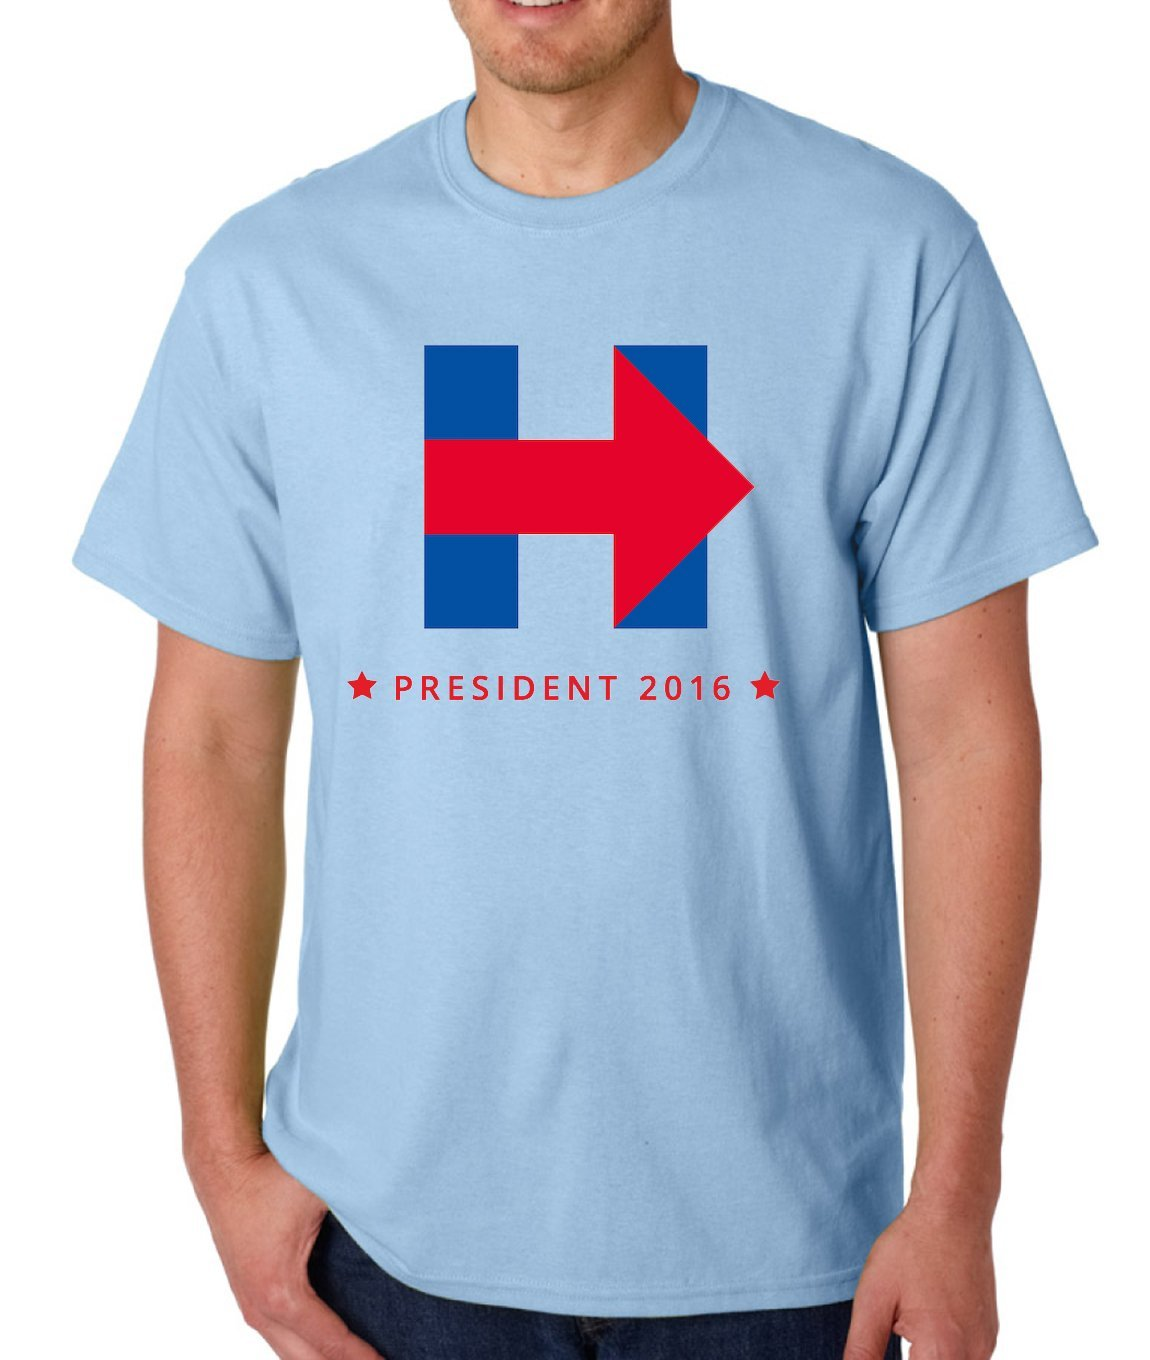 AW Fashion makes T-Shirts so Comfortable, Durable, and Luxurious that they can even withstand a Hillary Clinton Logo!